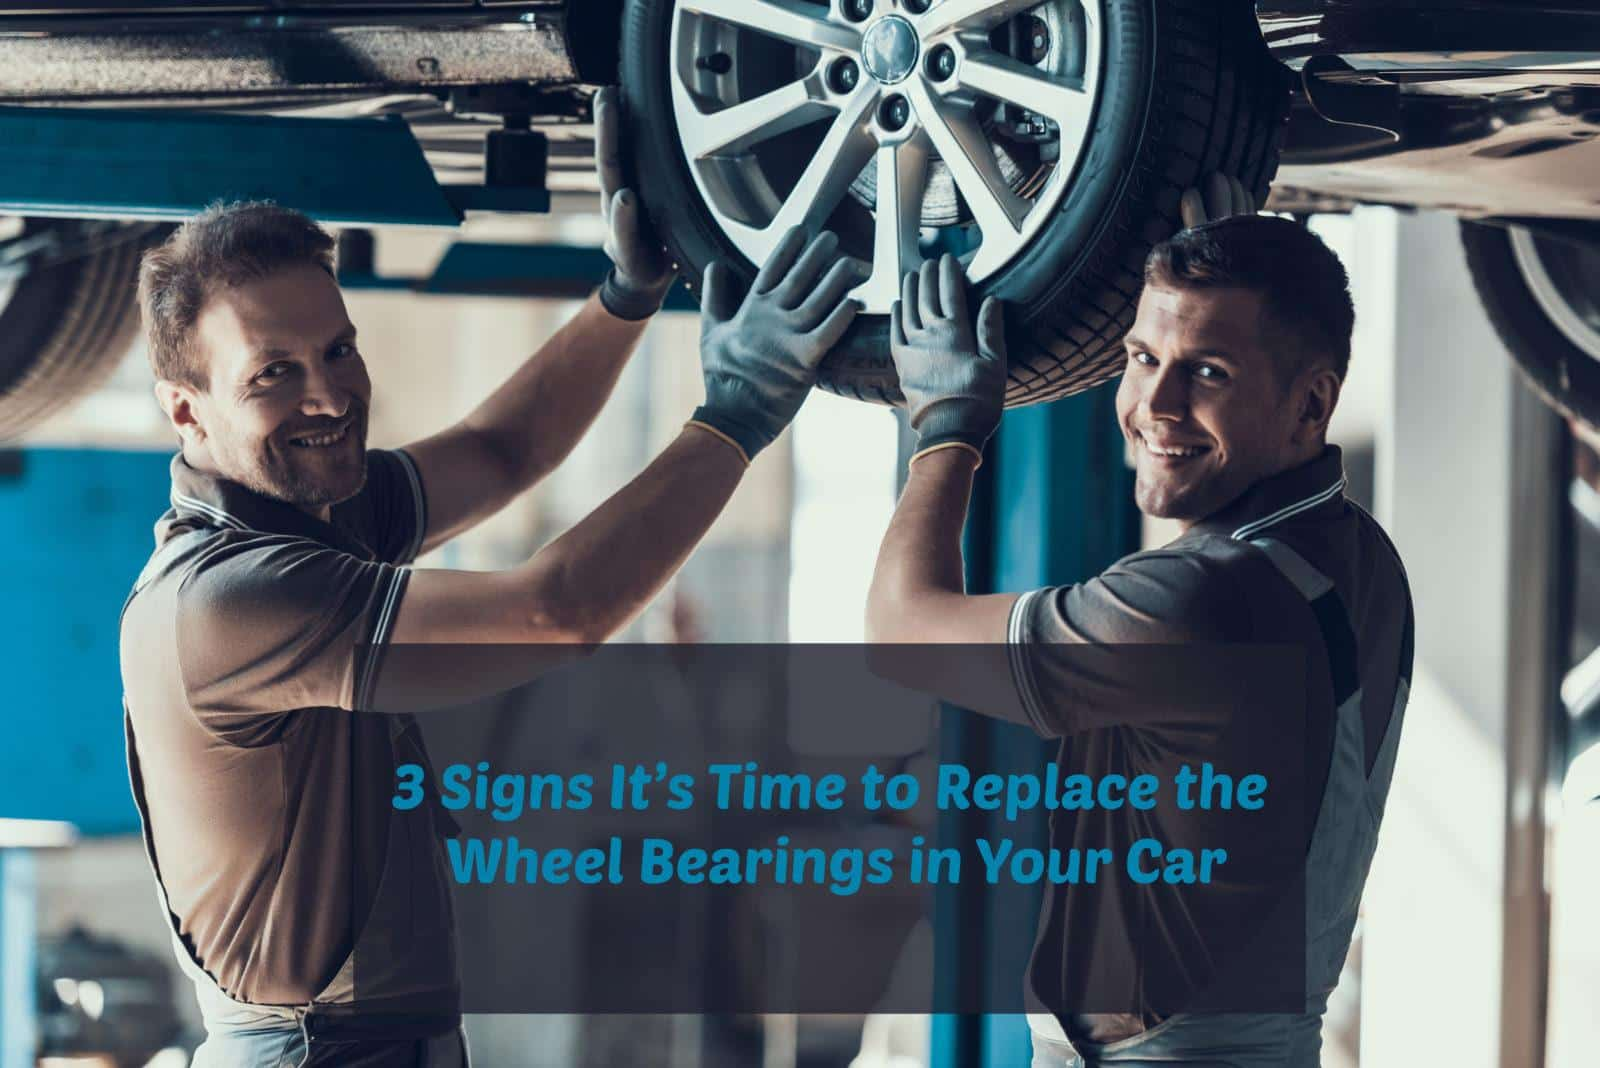 3 signs it's time to replace the wheel bearings in your car